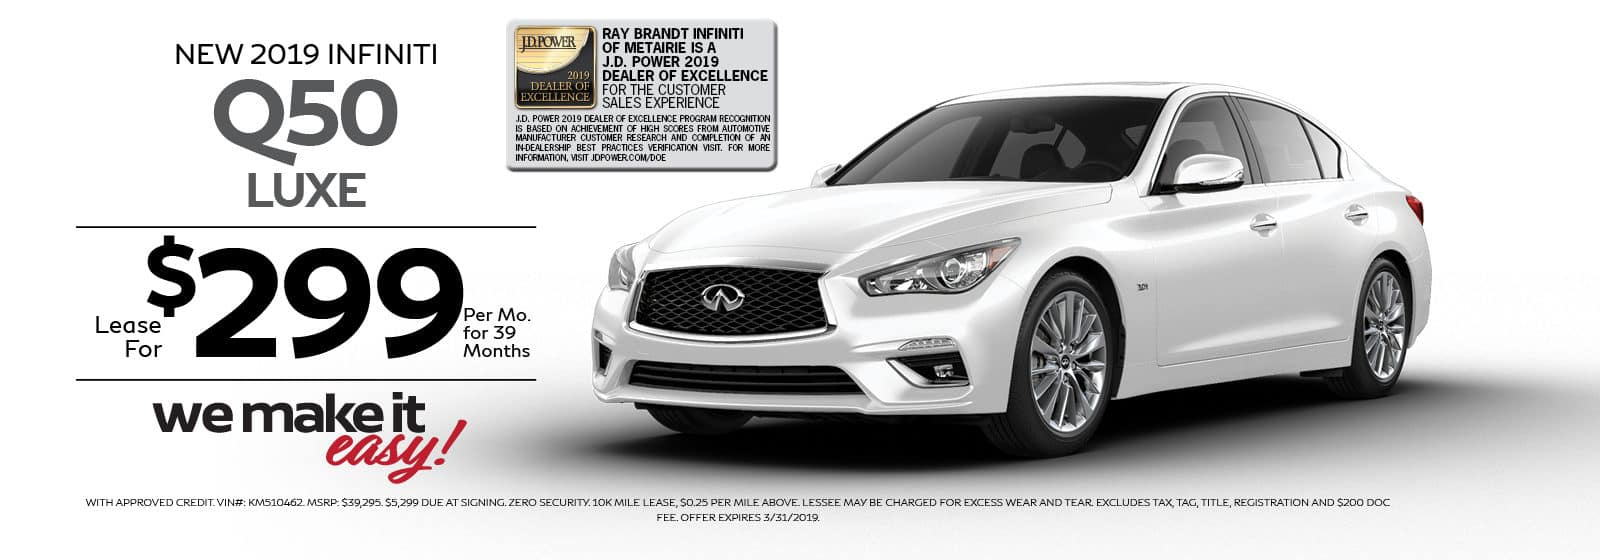 Q50 LUXE SPECIAL